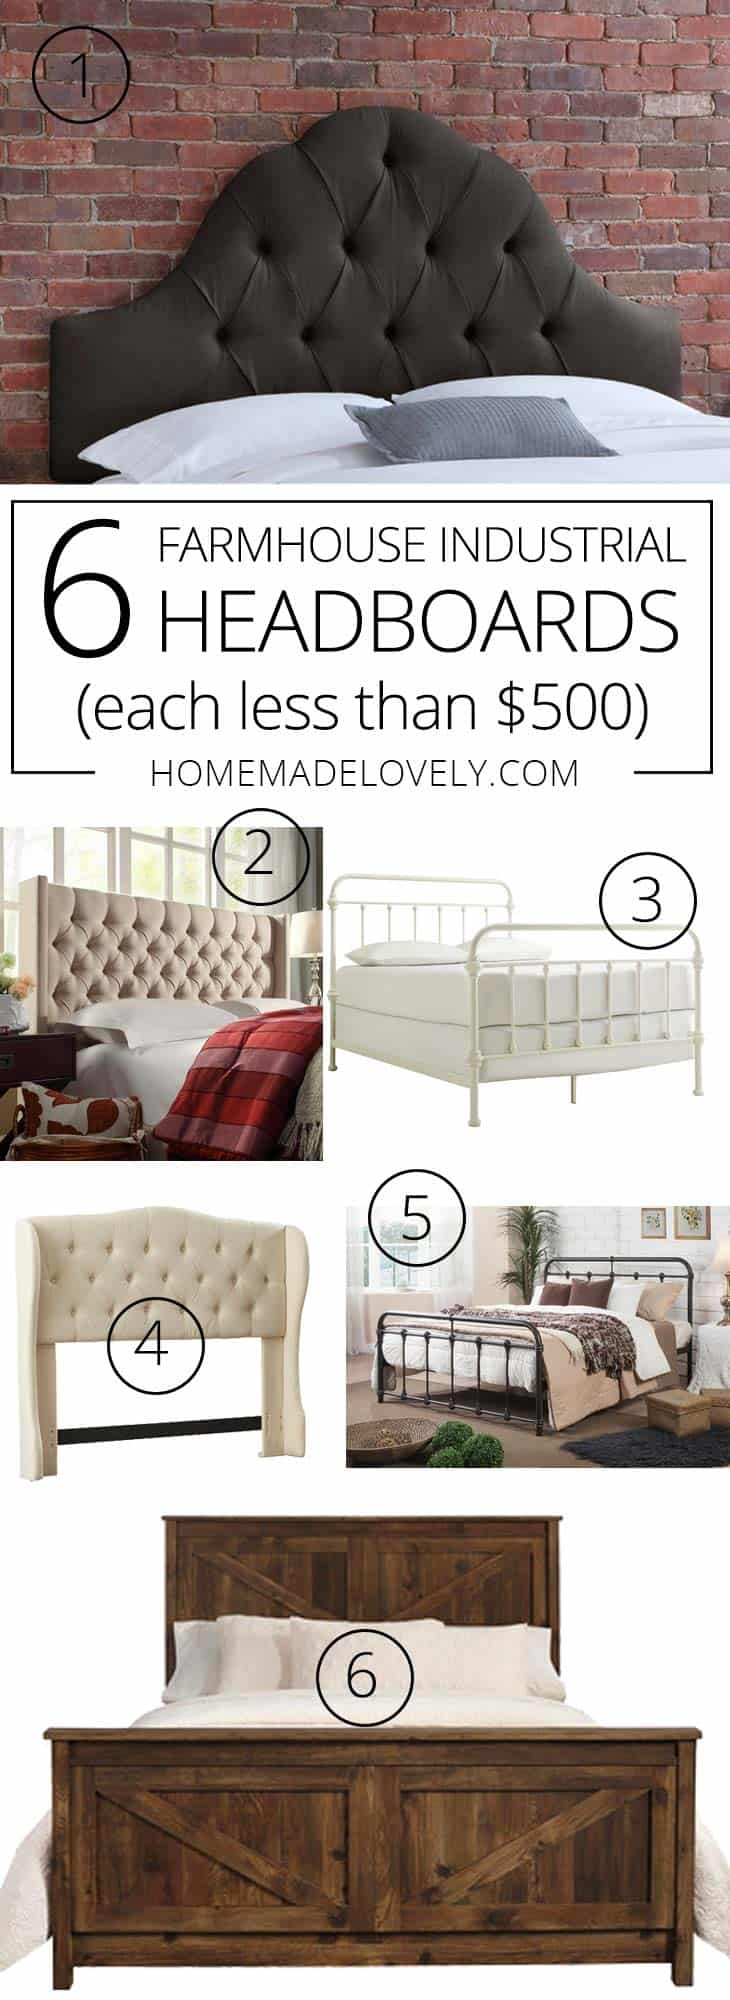 Sometimes it can be hard to find gorgeous furniture at a good price. We've rounded up 6 farmhouse industrial headboards each costing less than $500.